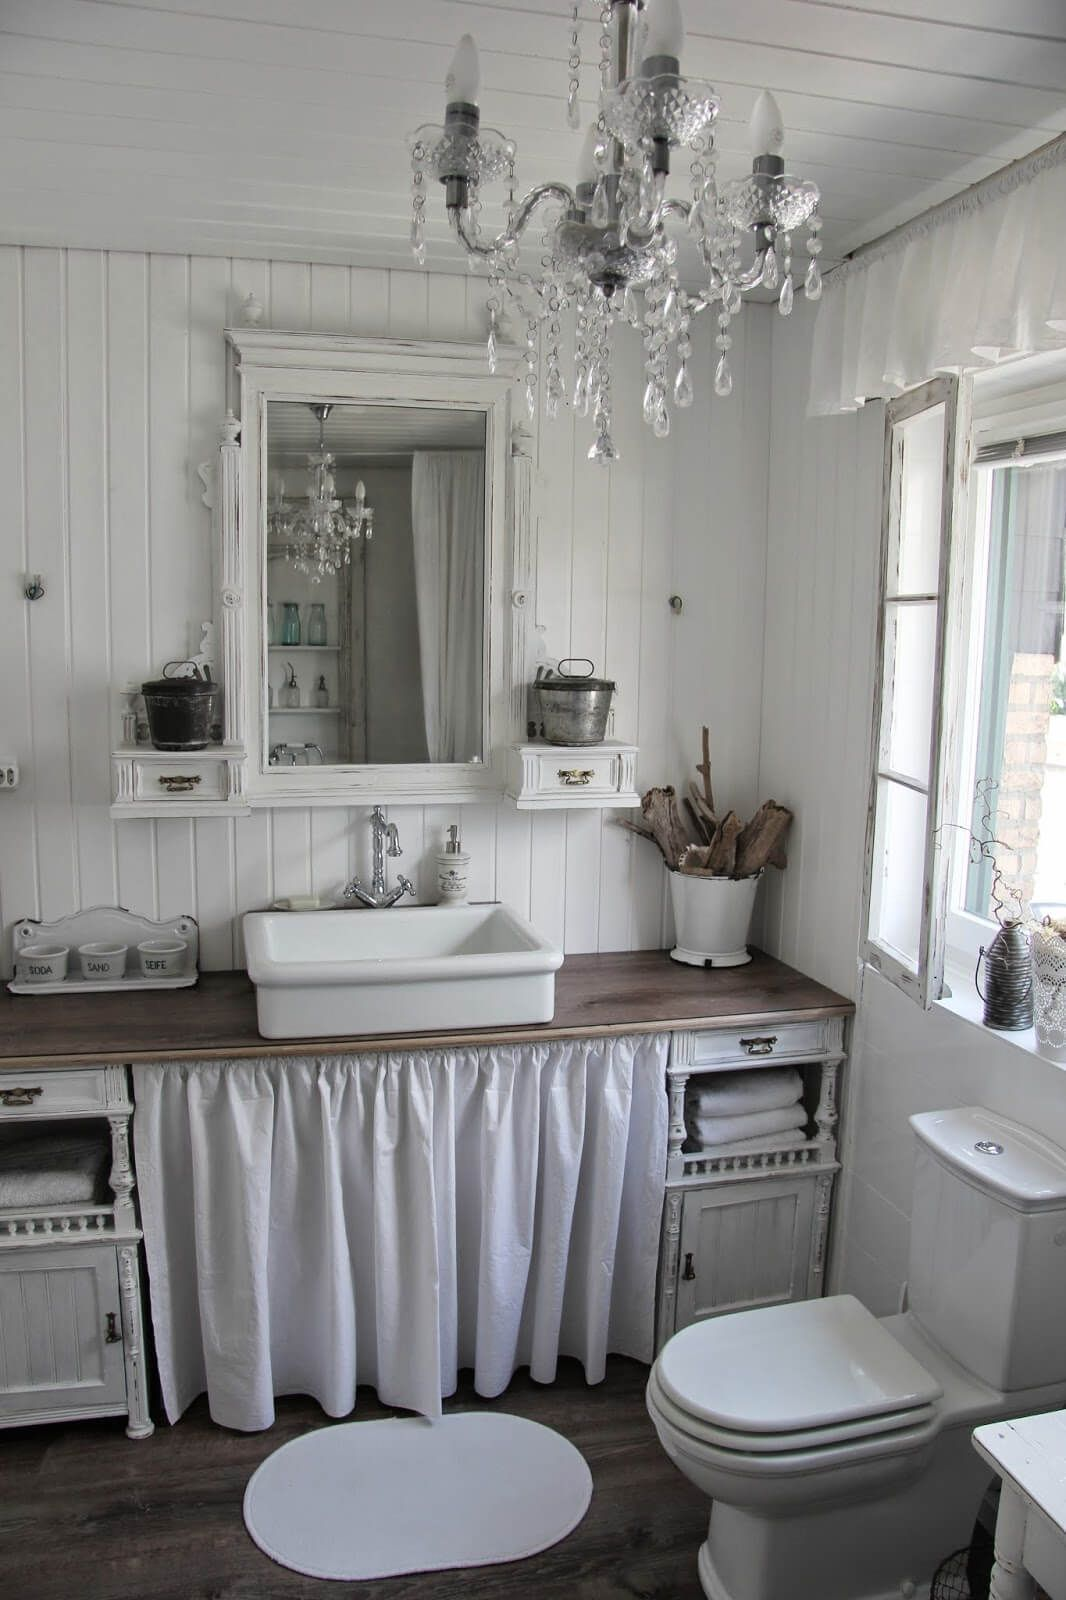 28 ways to give your bathroom a shabby chic vibe home decor design pinterest badezimmer. Black Bedroom Furniture Sets. Home Design Ideas